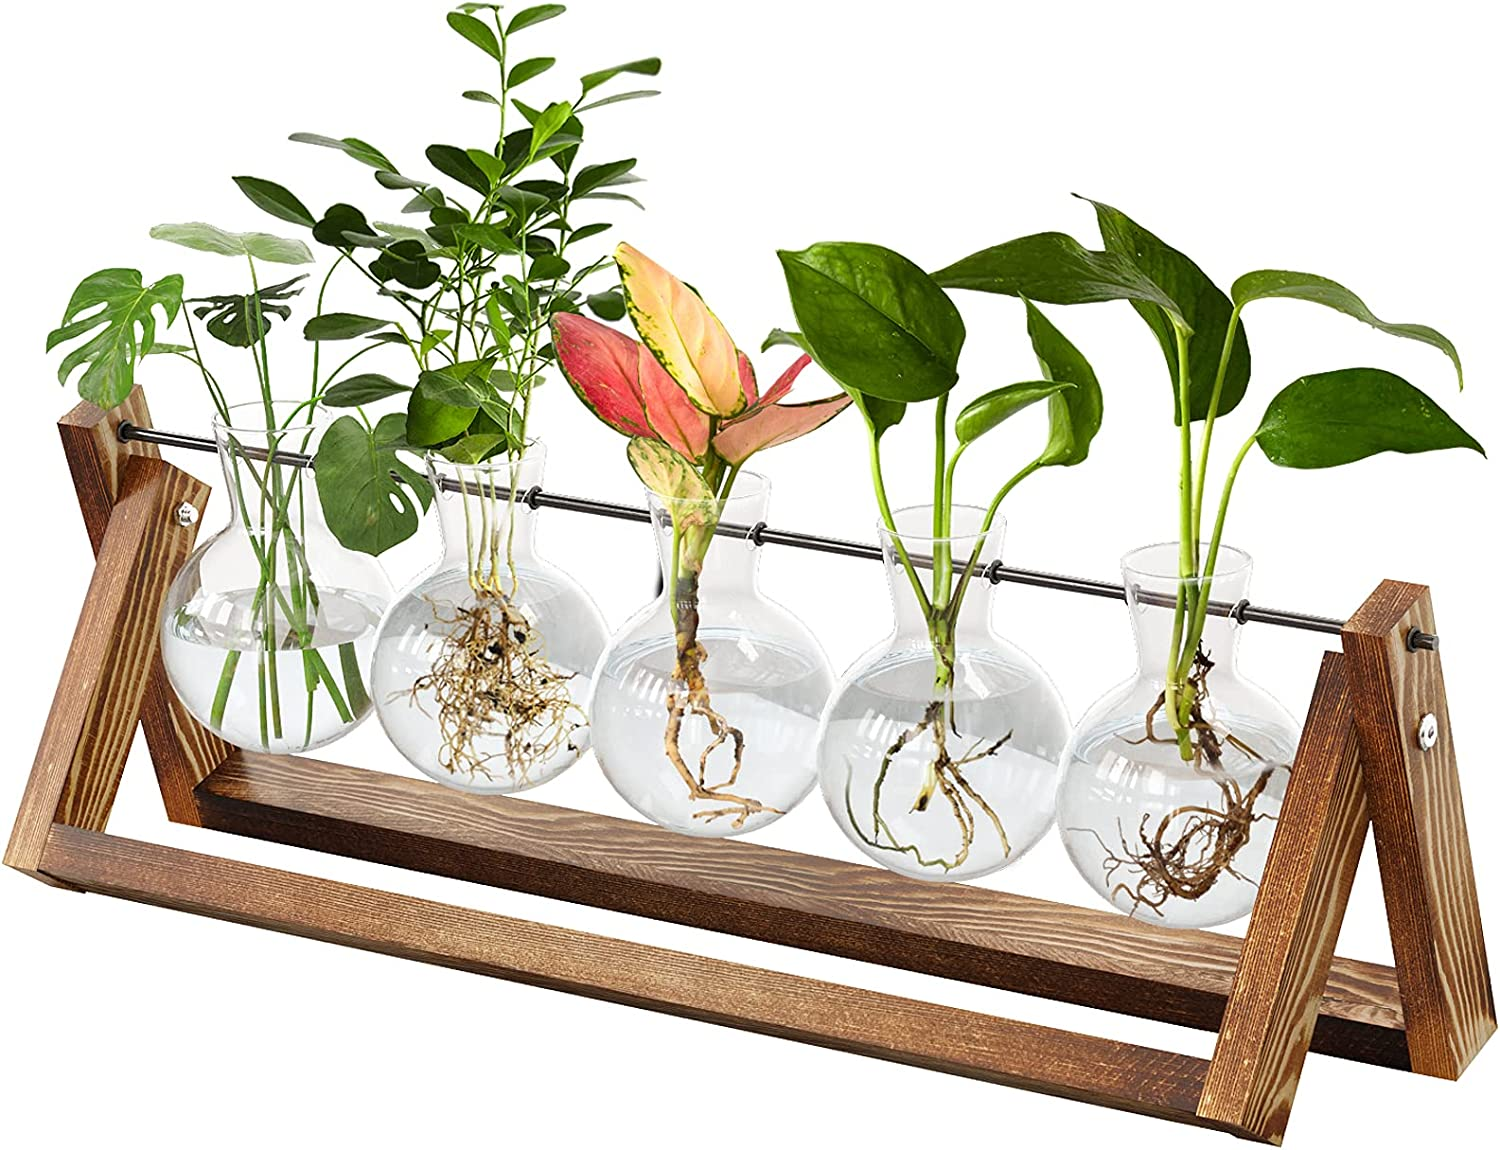 CFMOUR Plant Terrarium with Wooden Stand, Desktop Propagation Stations Glass Air Planter Metal Swivel Holder for Indoor Live Hydroponics Plants Office Home Garden Decor (5 Bulb Vase)